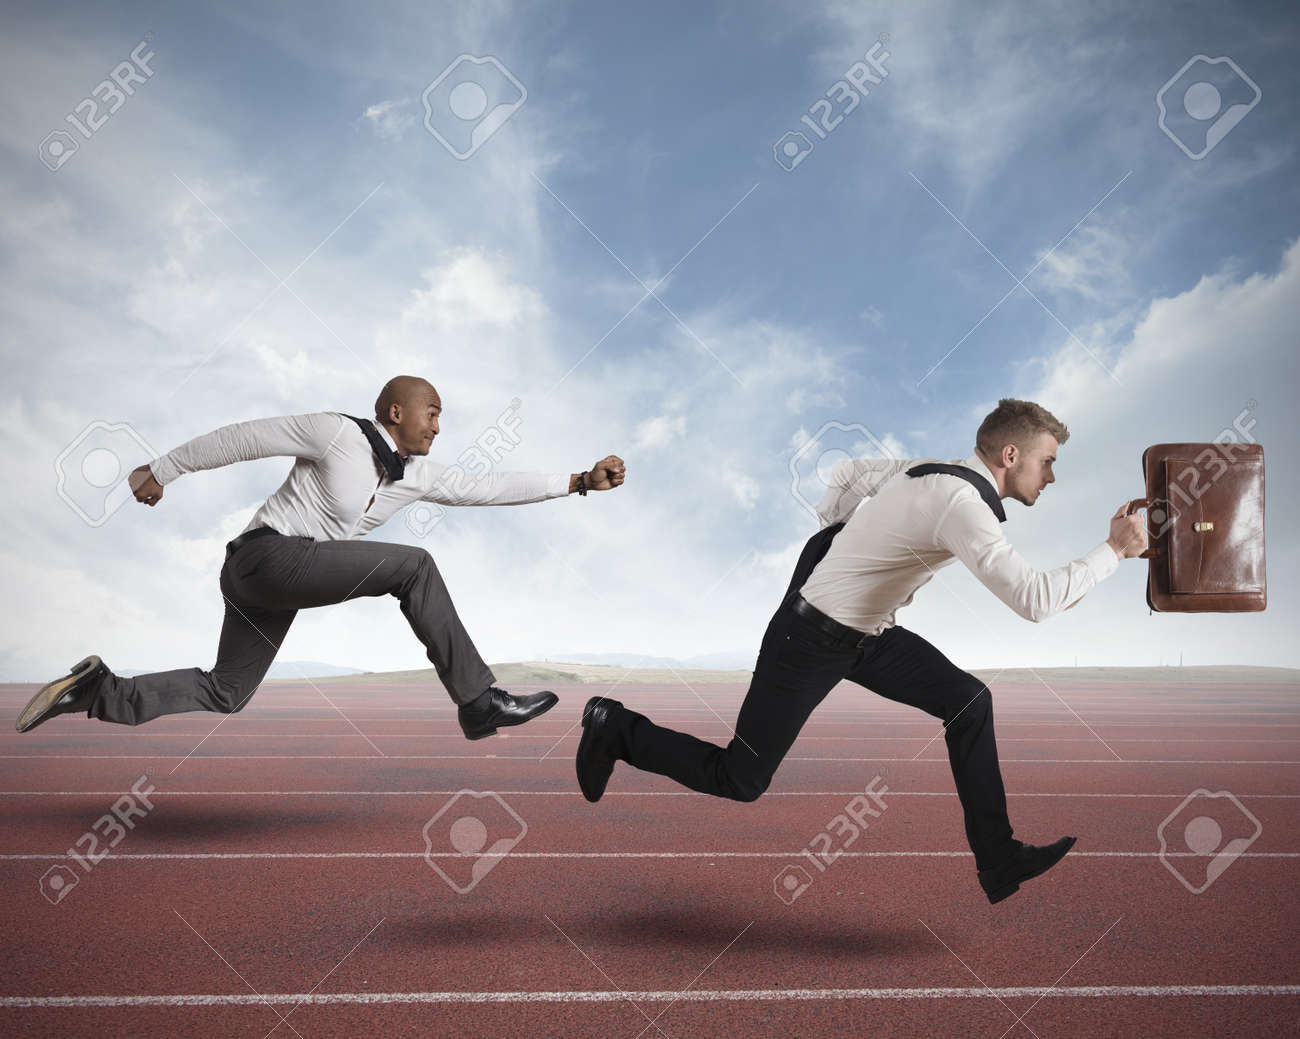 Conceot of competition with two running businessman in a track - 18184243